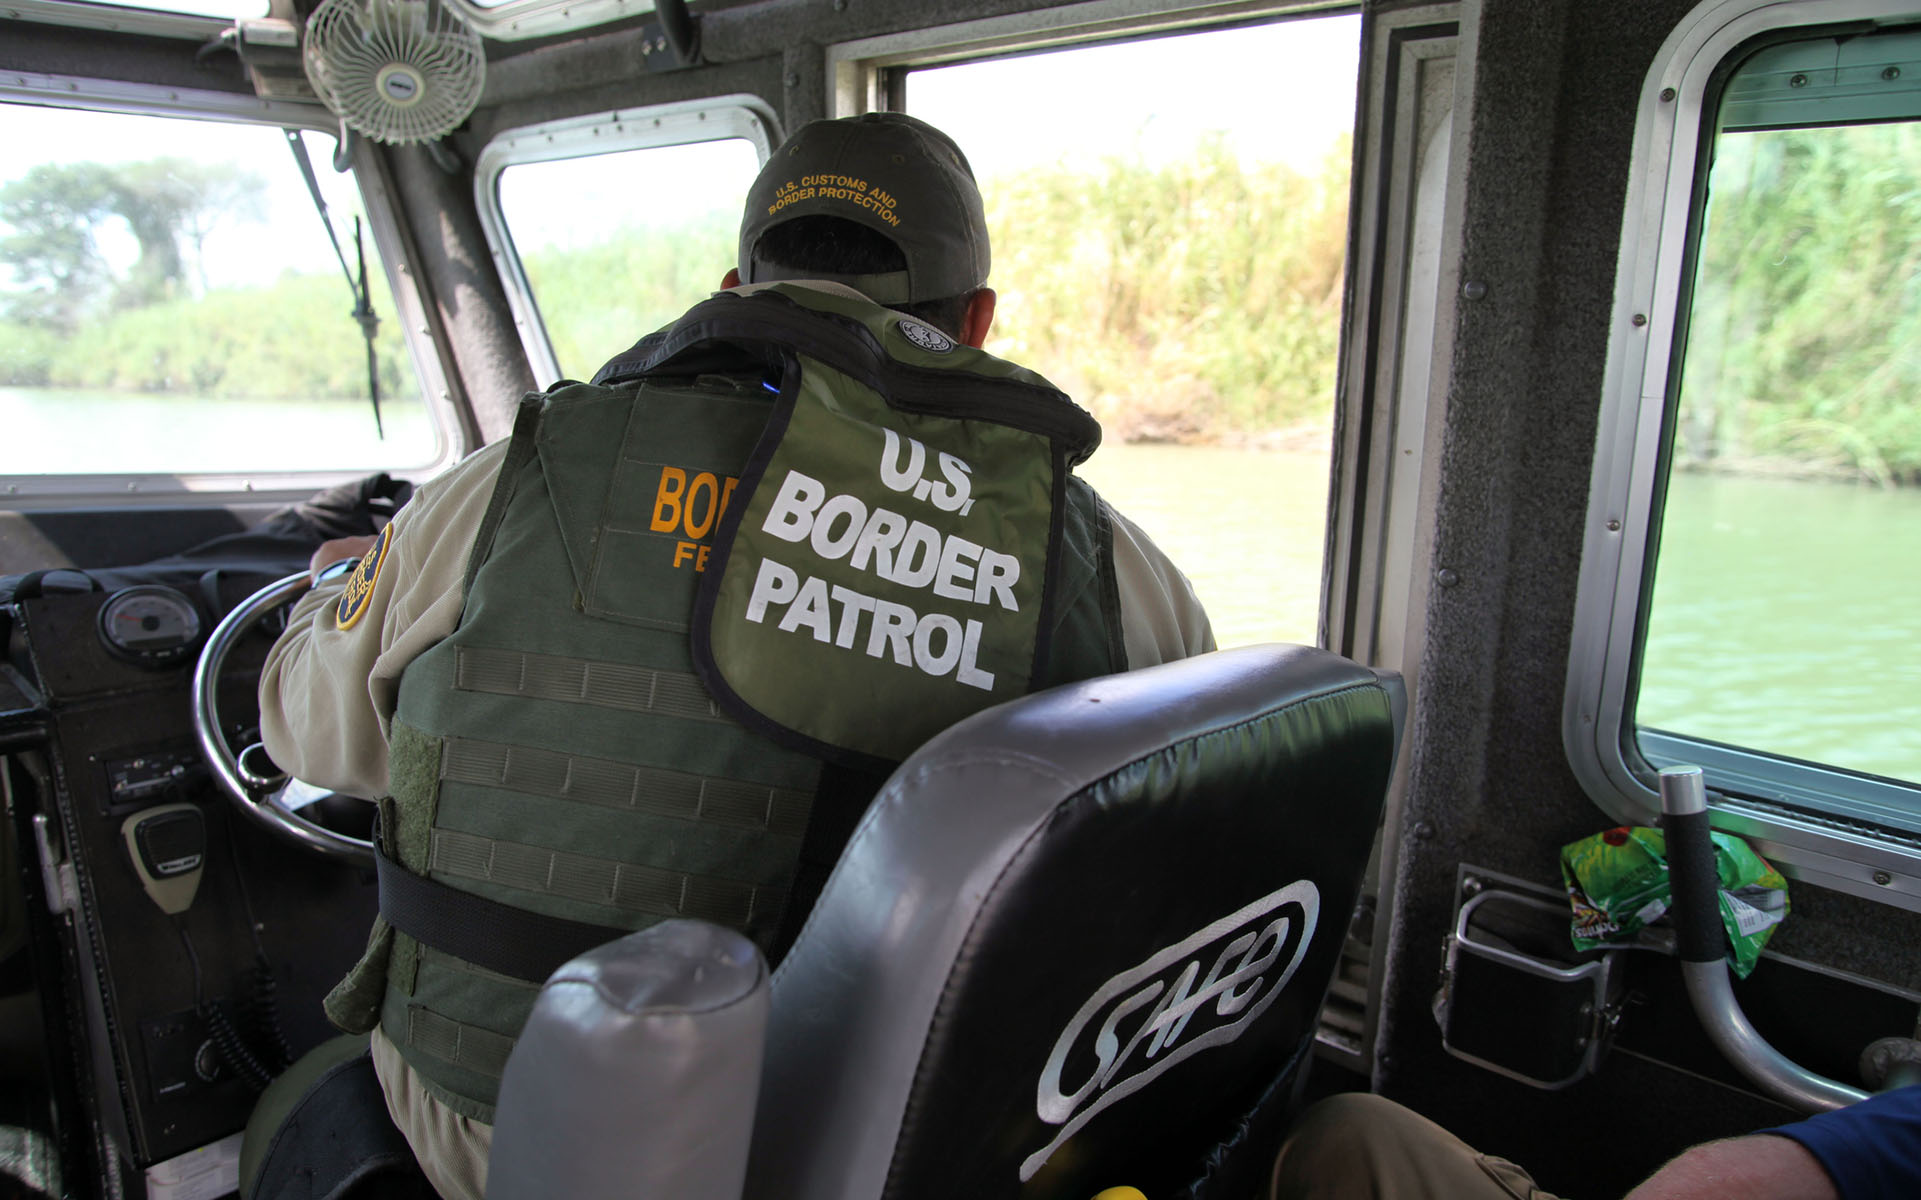 La Paloma, Texas, USA - September 22, 2015: A Border Patrol agent pilots a river patrol boat and monitors the Rio Grande River for illegal aliens crossing into the U.S. Such encounters are a daily experience in the Rio Grande Valley sector of Border Patrol operations.